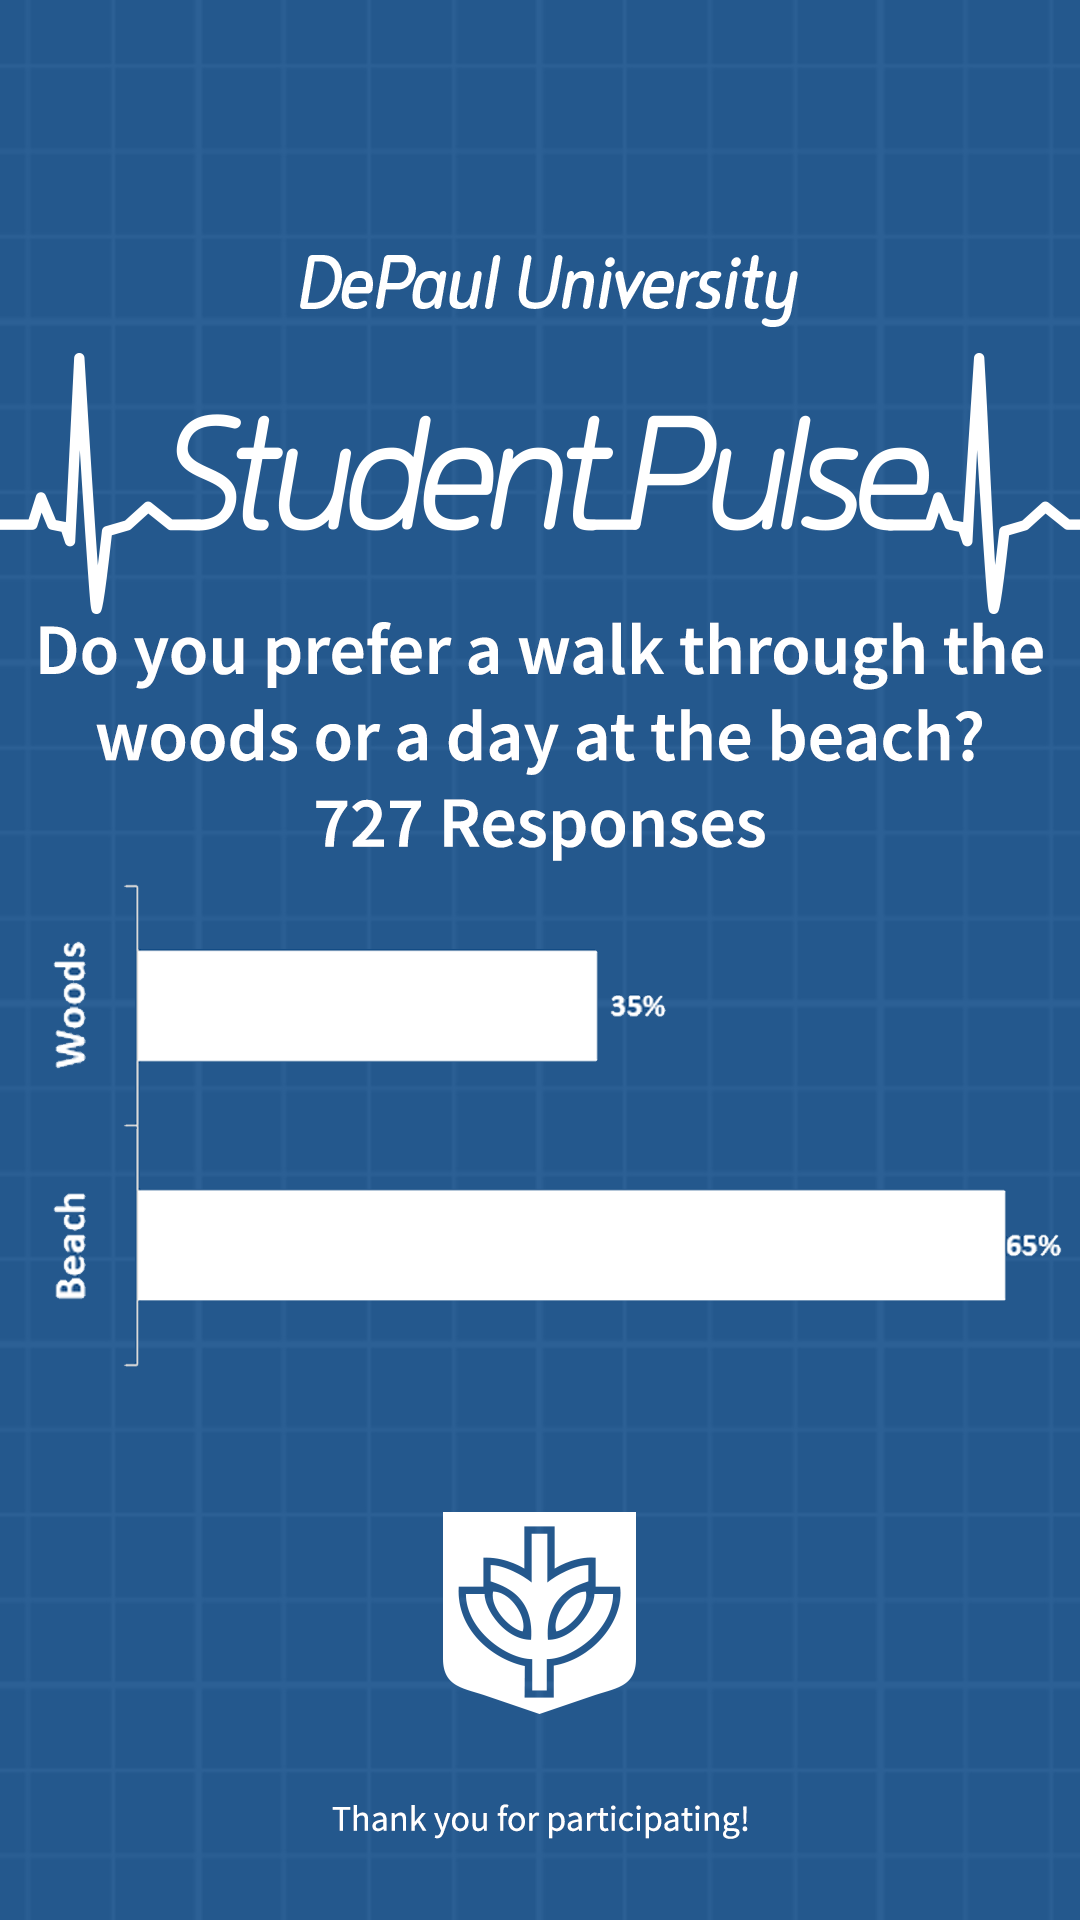 Do you prefer a walk through the woods or a day at the beach?